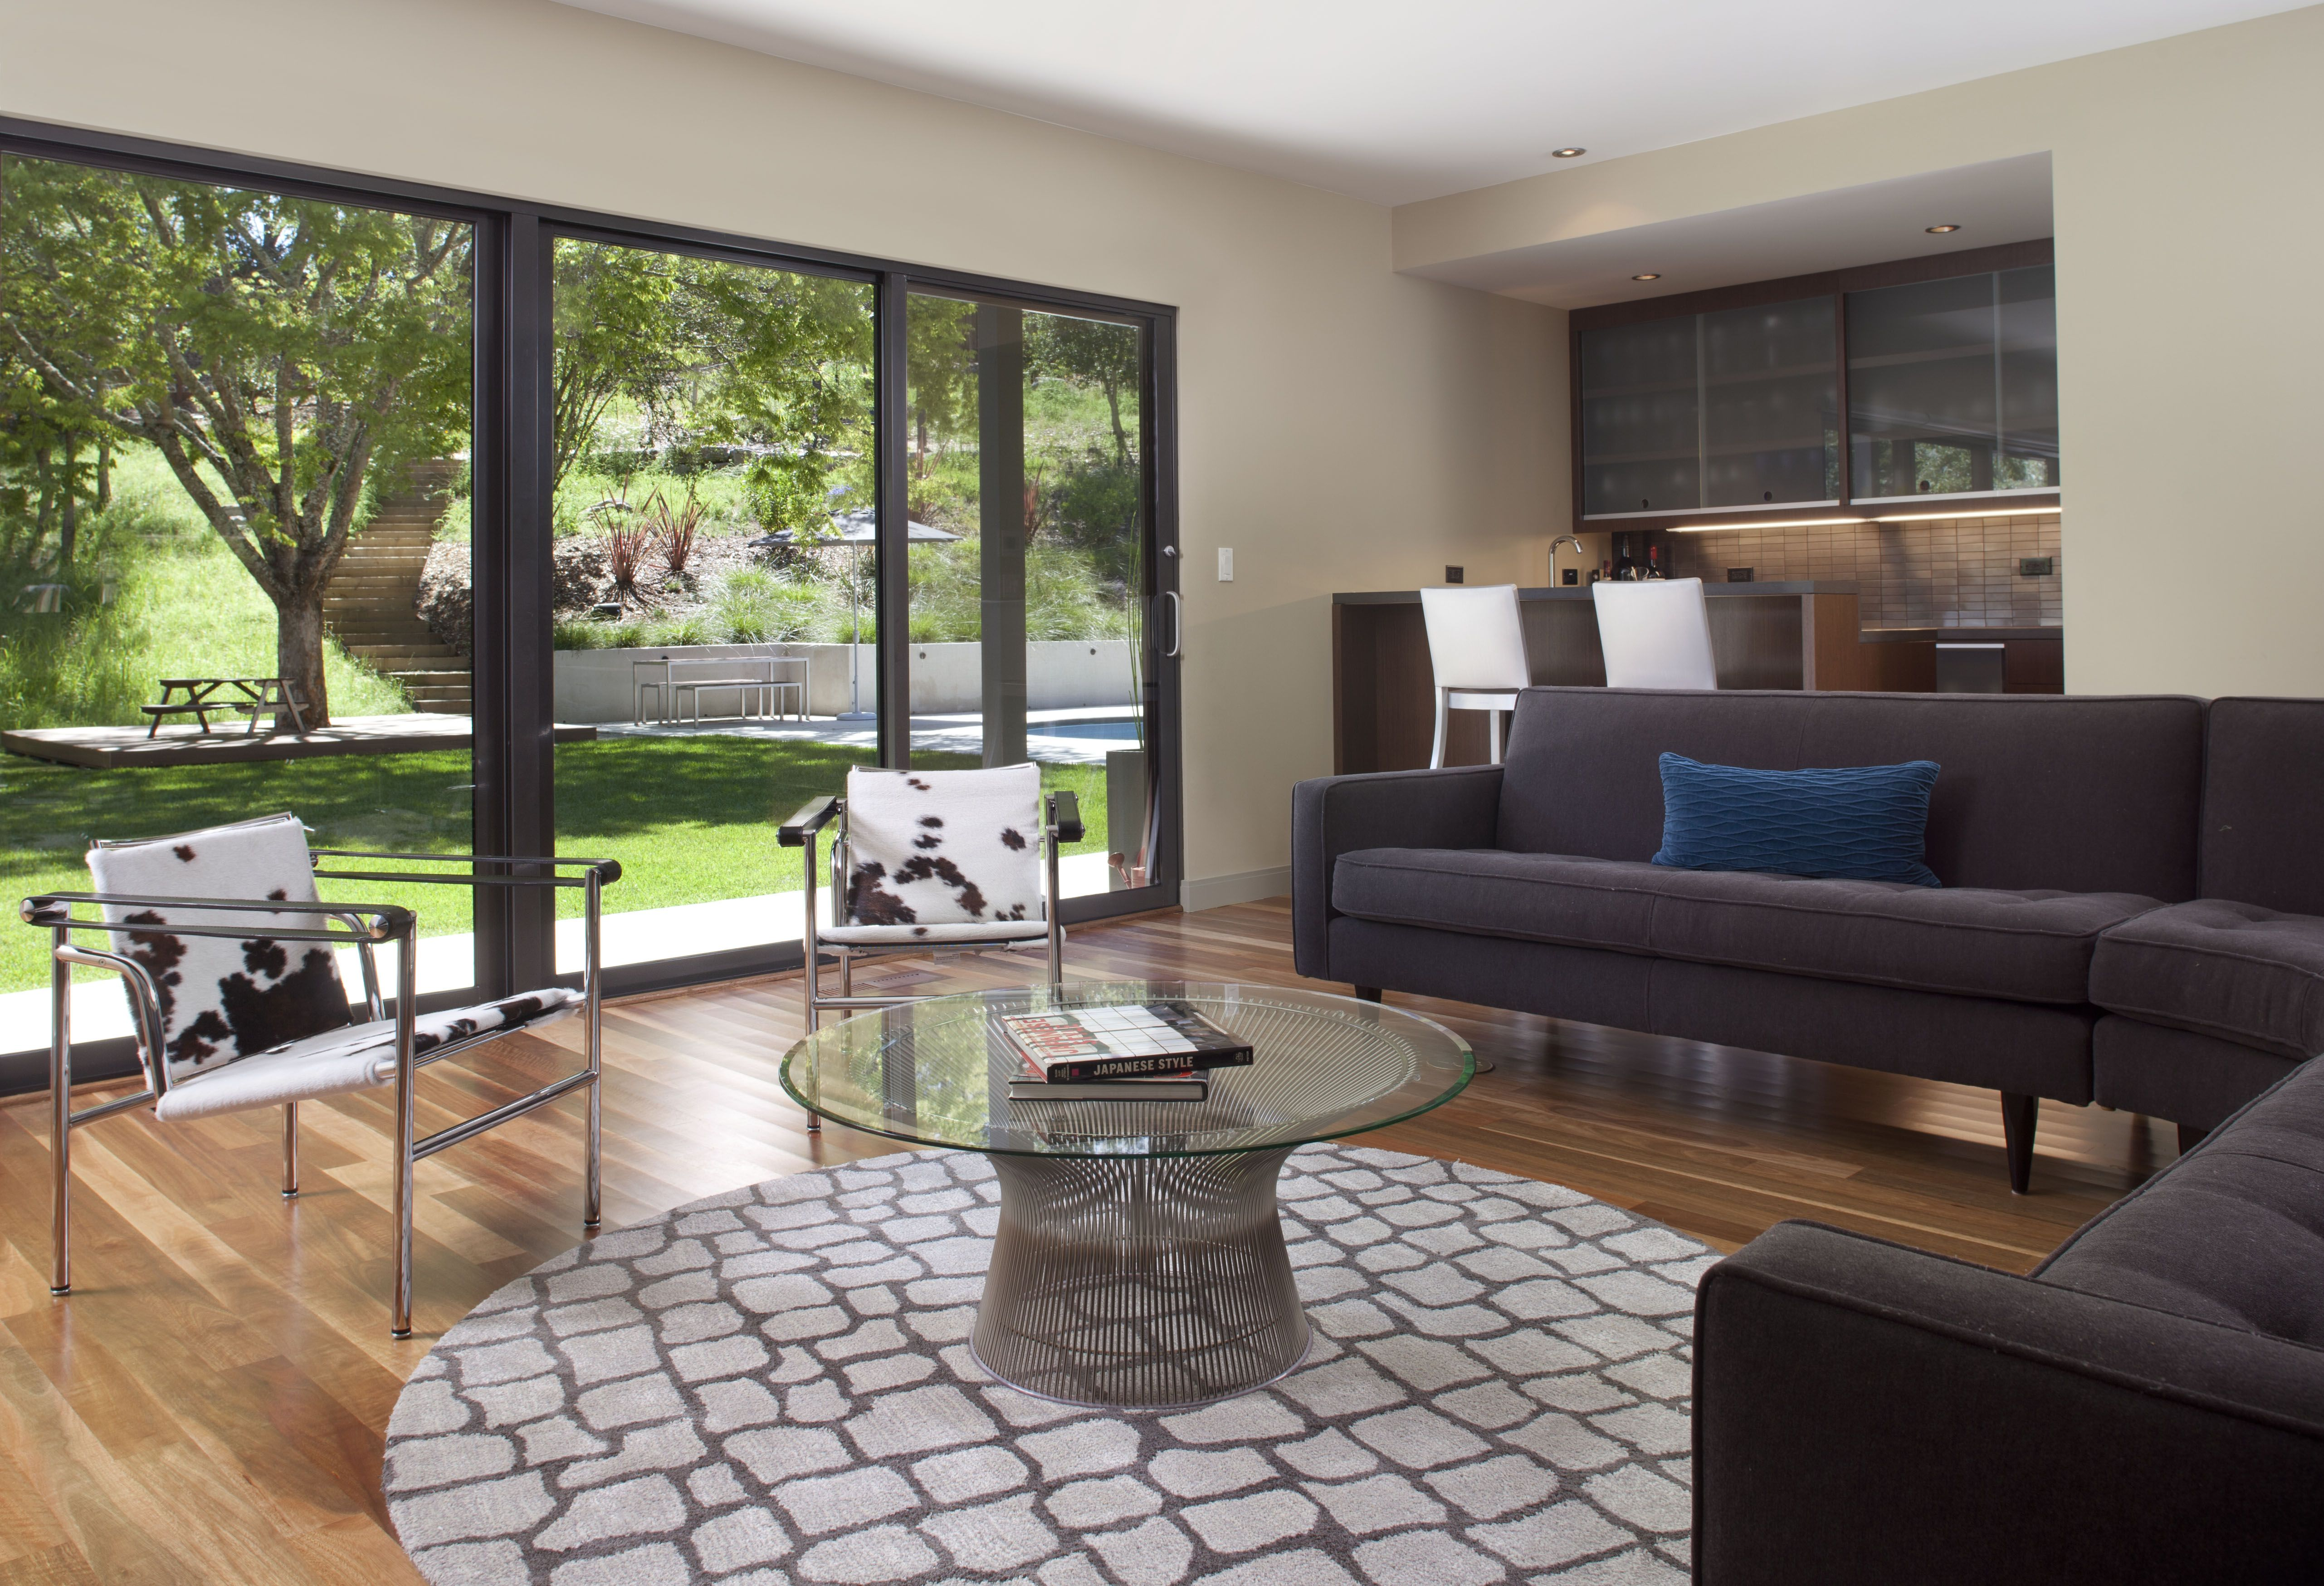 The Living Room Sliding Door Was Enlarged With A New Bonelli Aluminum Unit And A Wet Bar Was D Living Room Sliding Doors Sliding Glass Door Living Room Designs